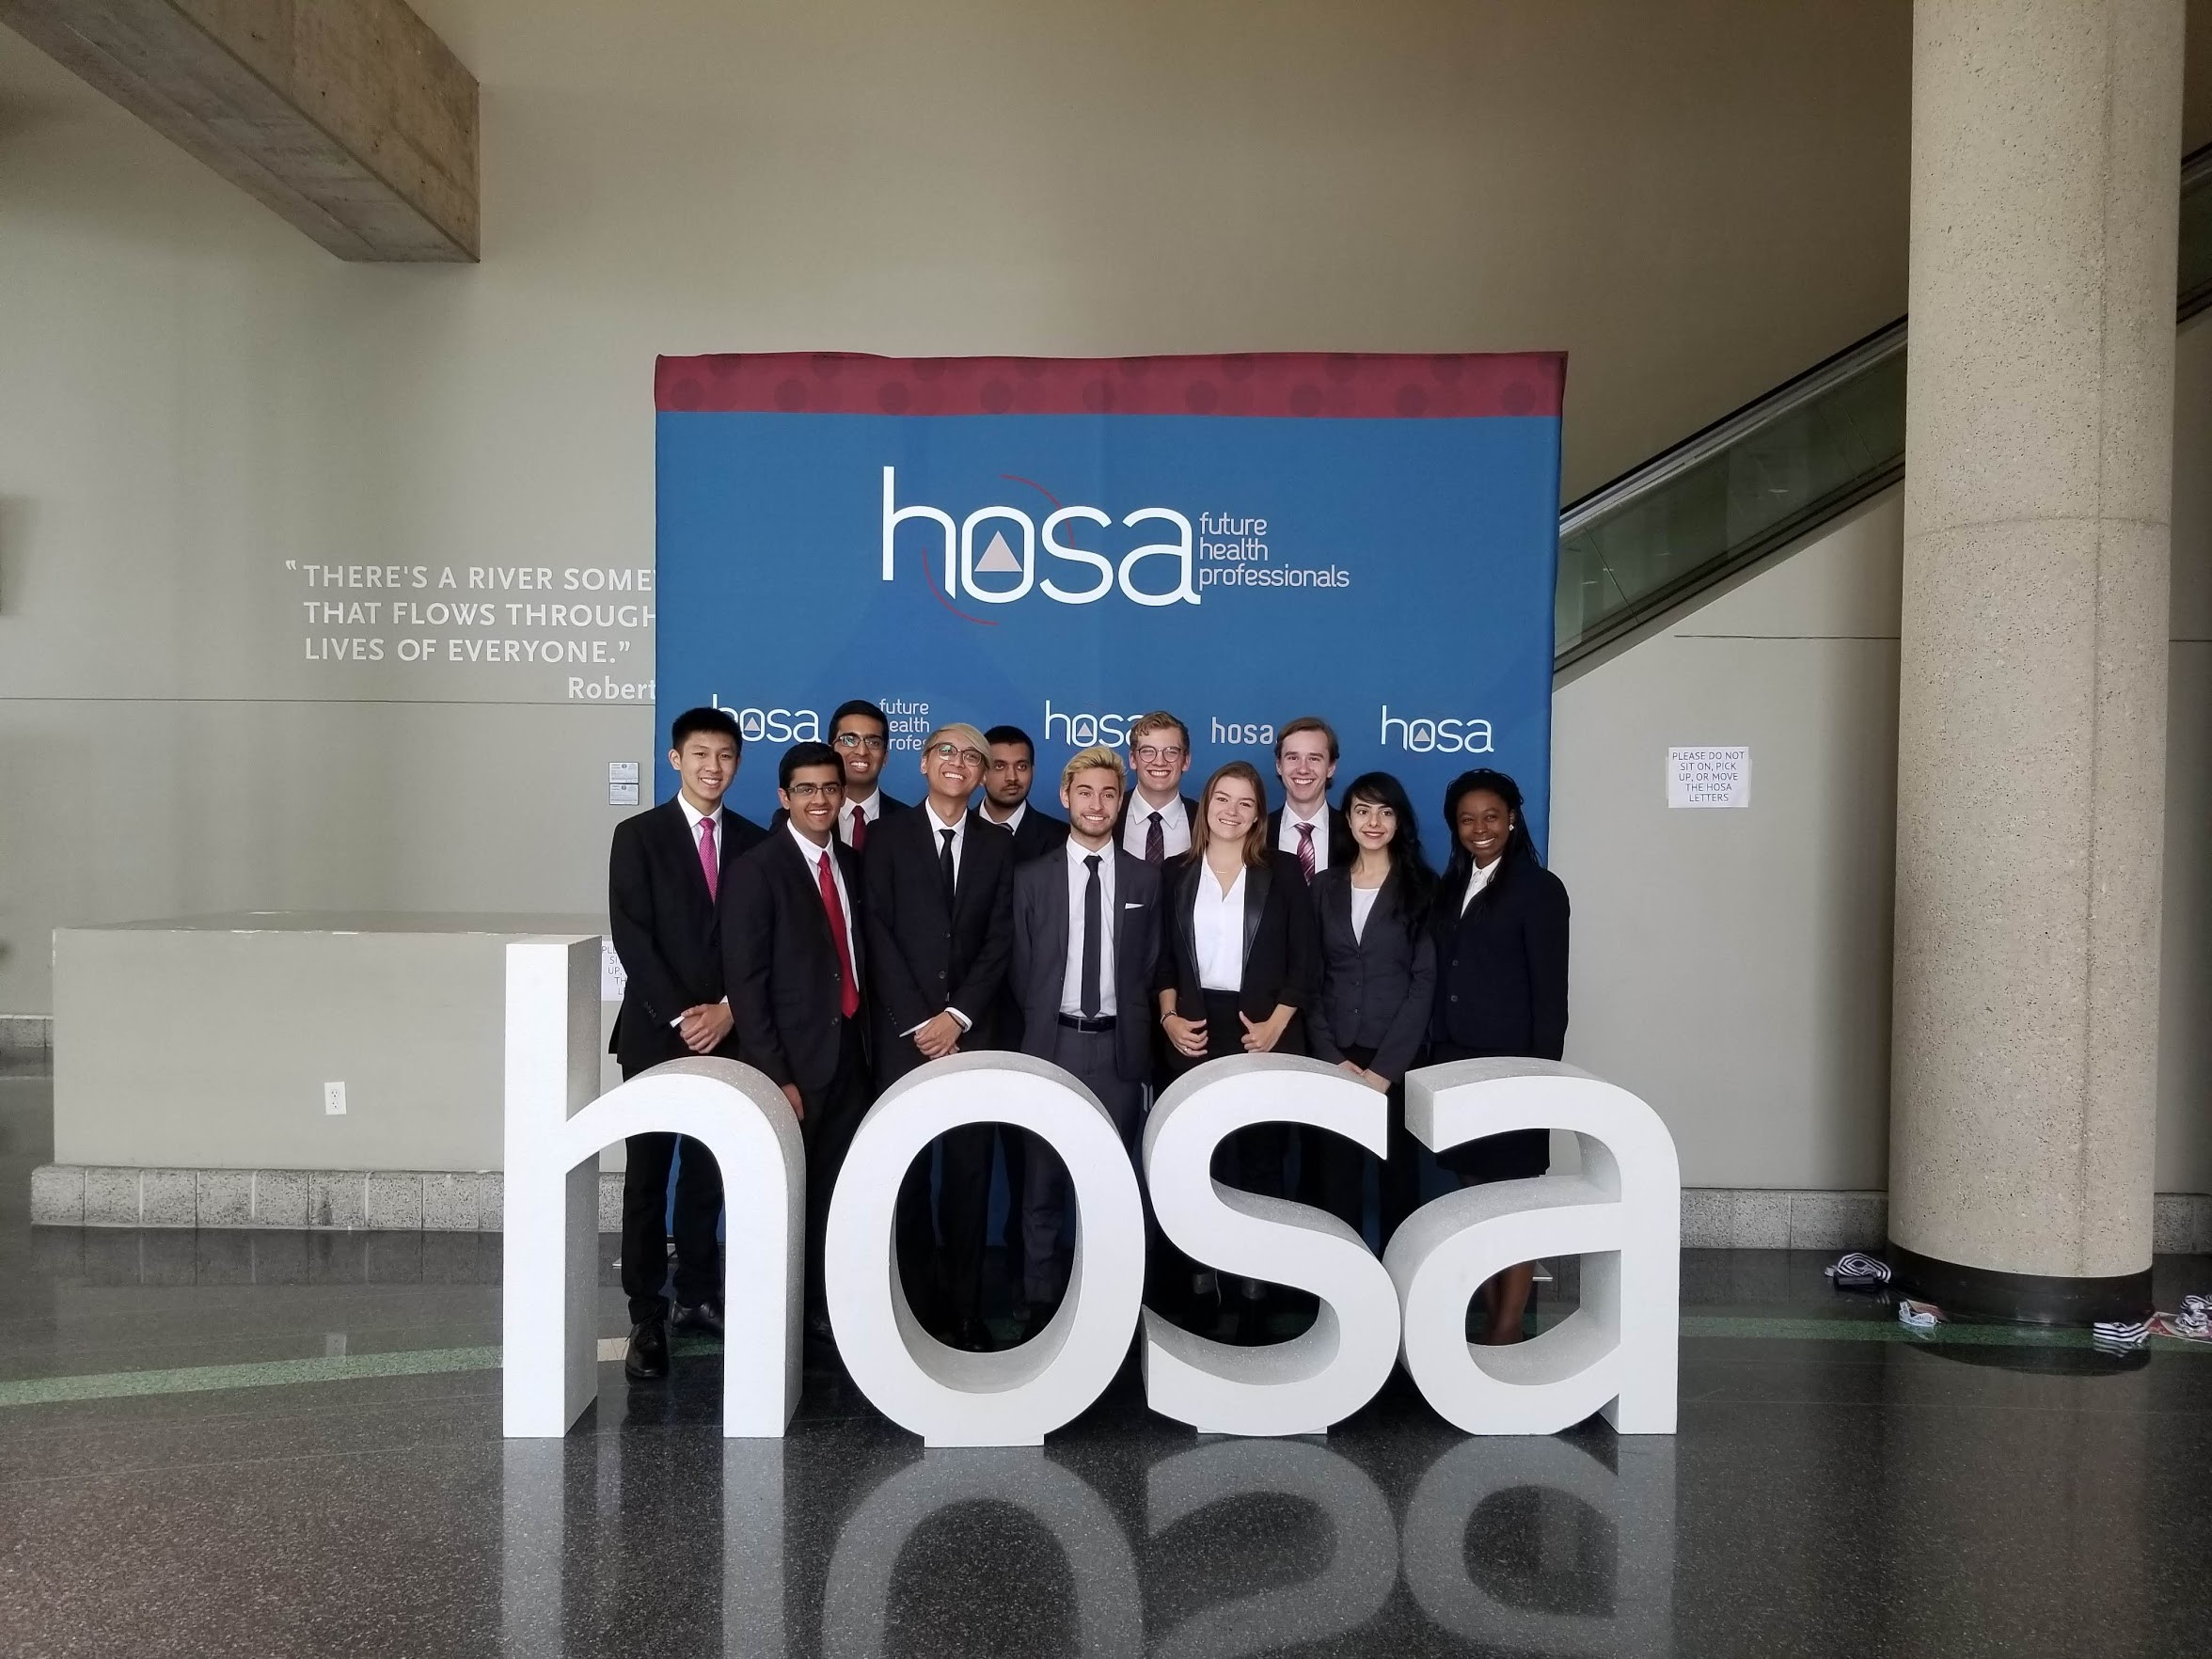 students behind HOSA sign